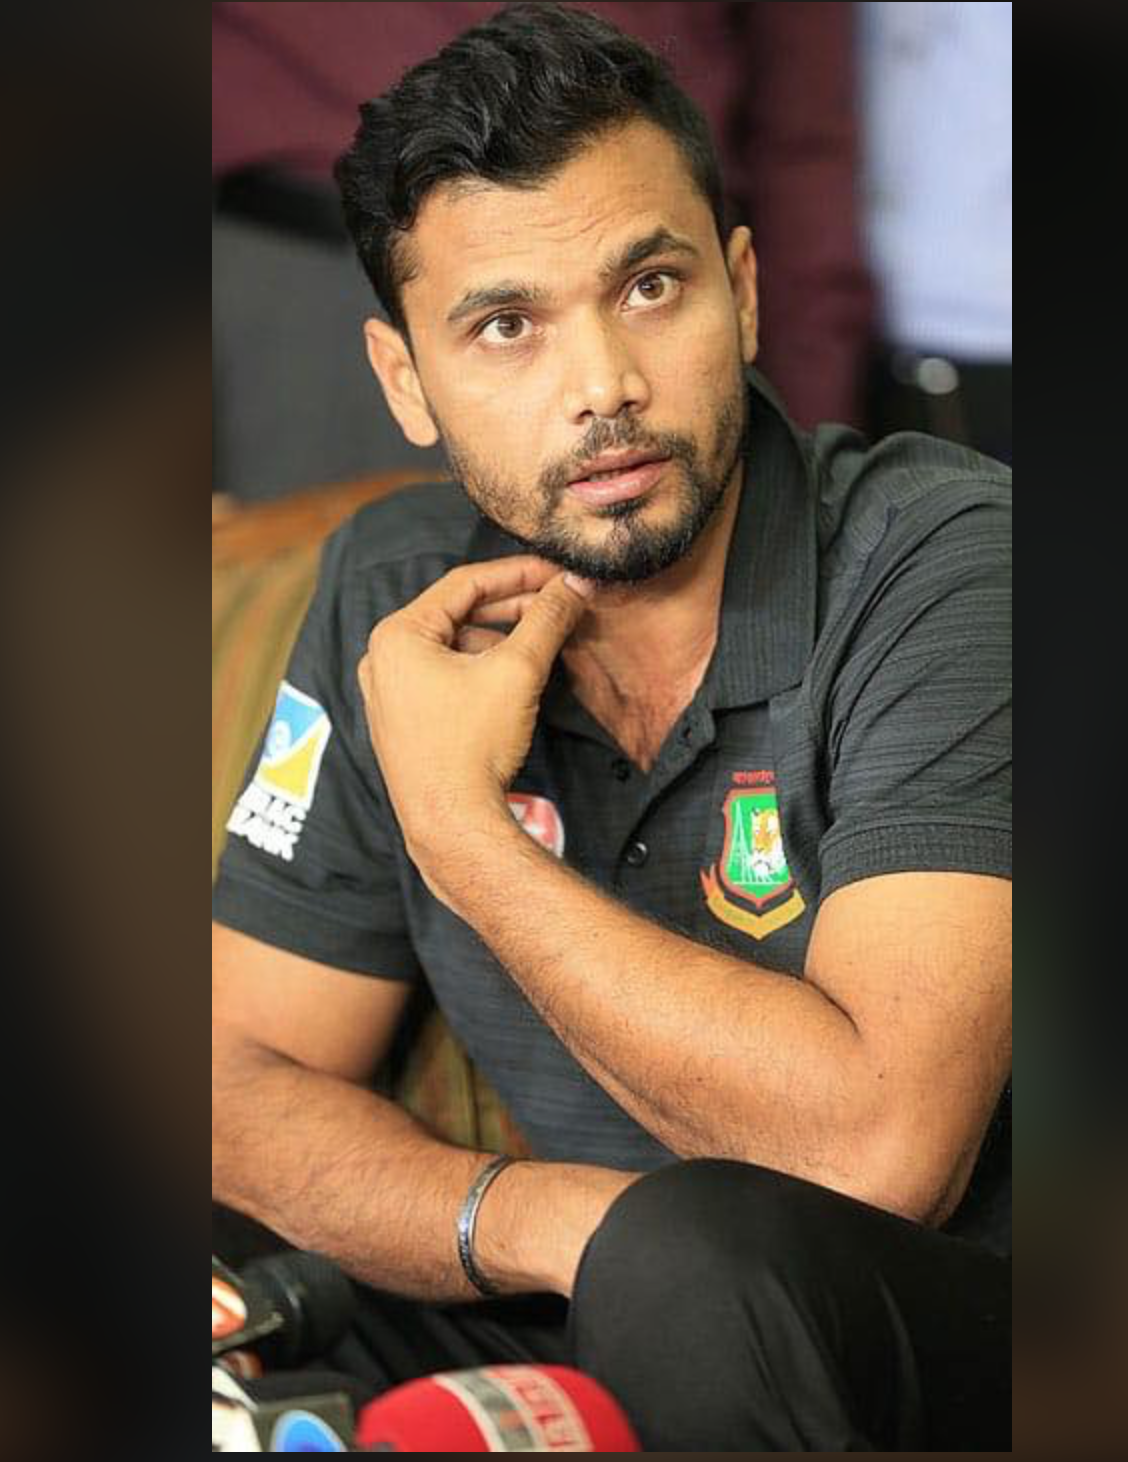 Photo Courtesy: Mashrafe Mortaza/Facebook